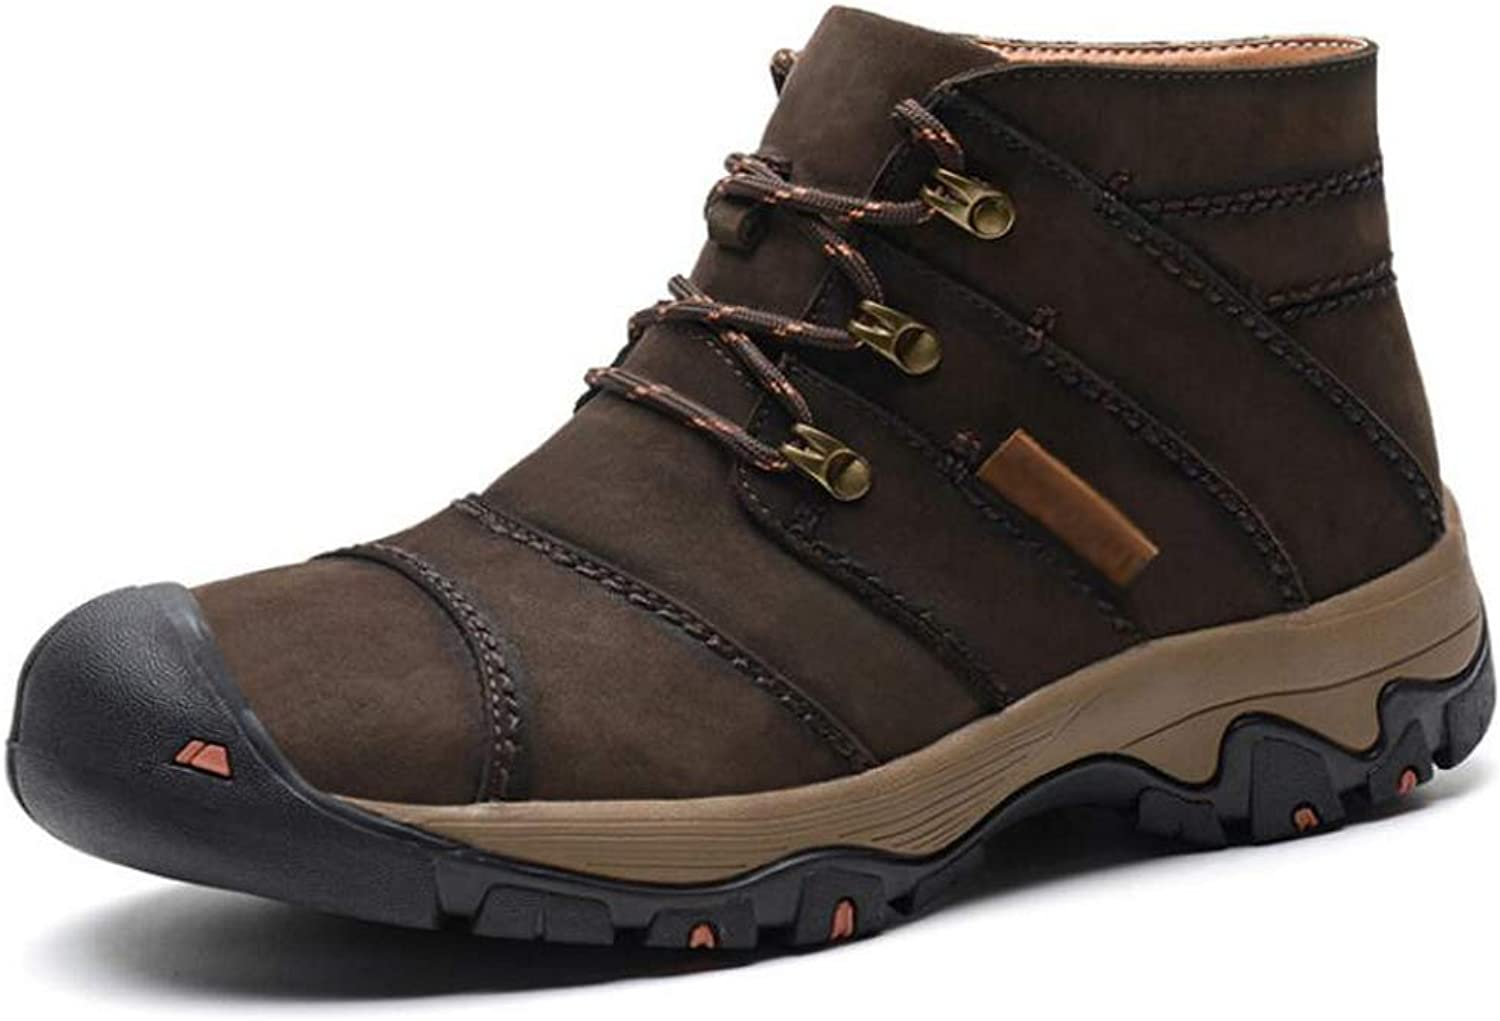 ACVXZ Men's hiking shoes outdoor running shoes casual shoes hiking shoes waterproof sports shoes (color   BROWN, Size   40)